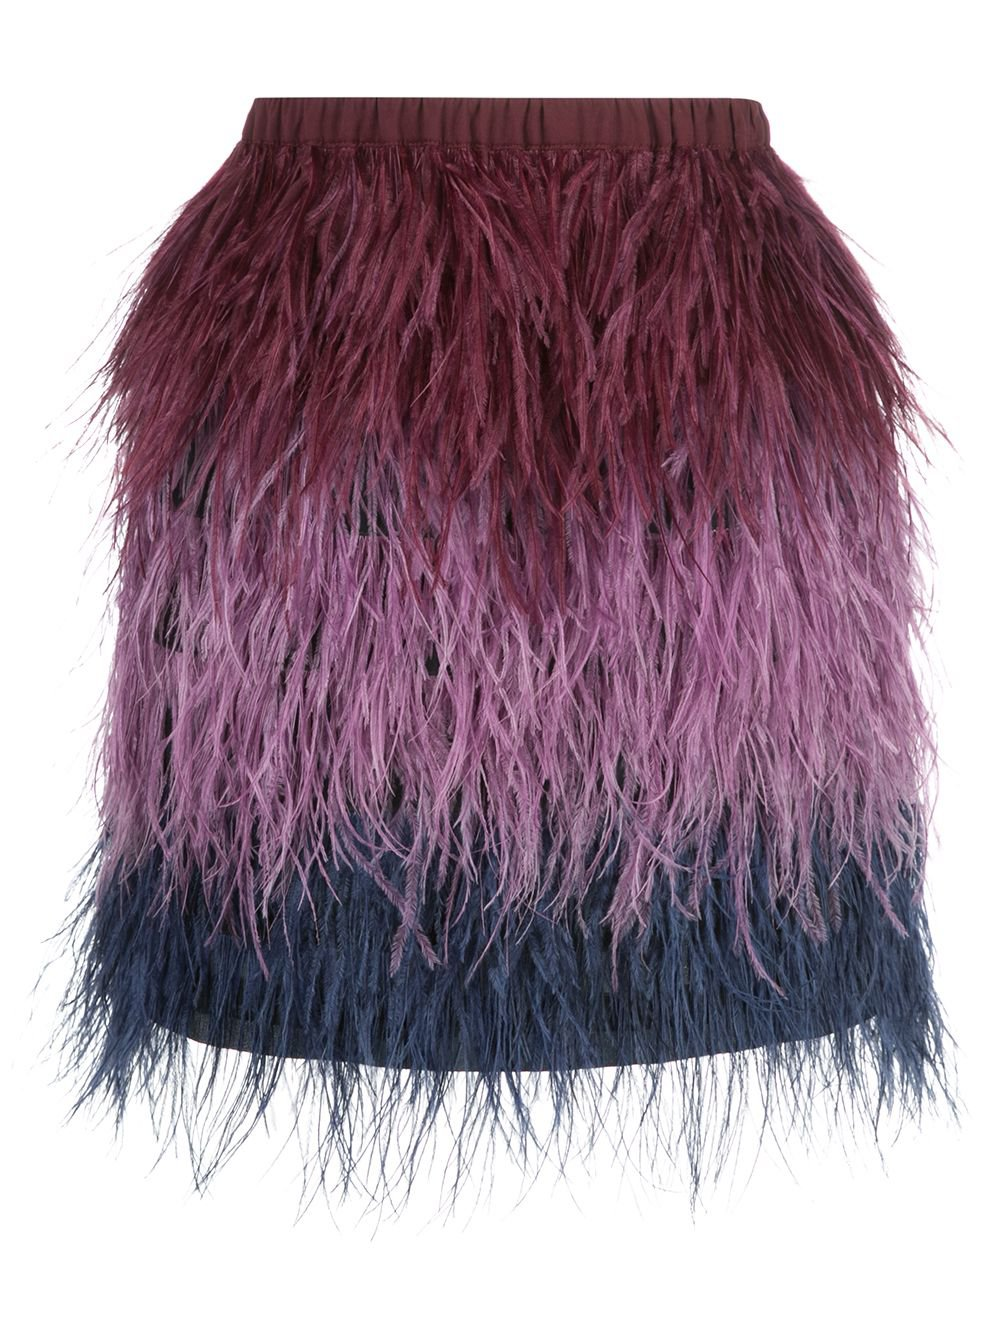 Cynthia Rowley Ostrich Feather Mini Skirt | Farfetch.com